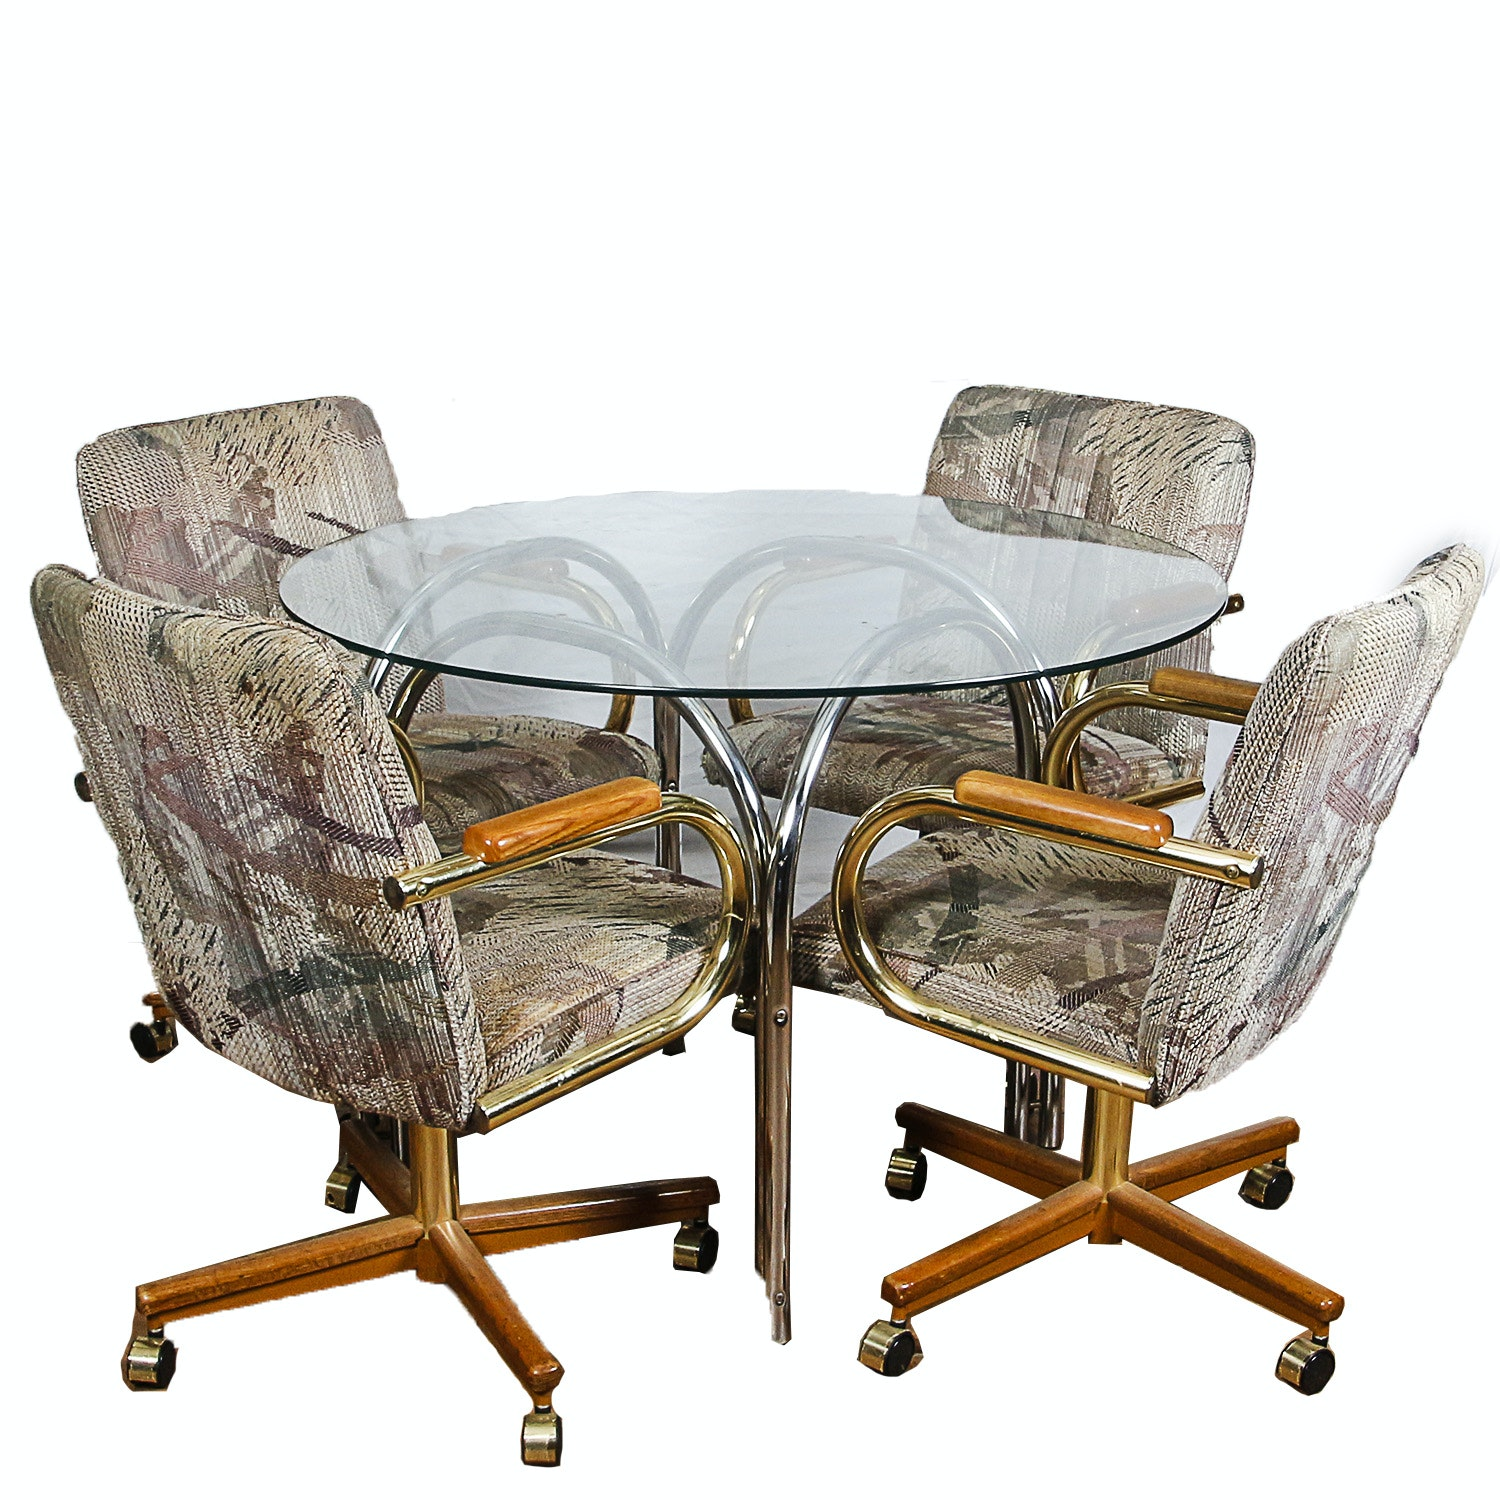 Vintage Glass and Metal Table with Armchairs